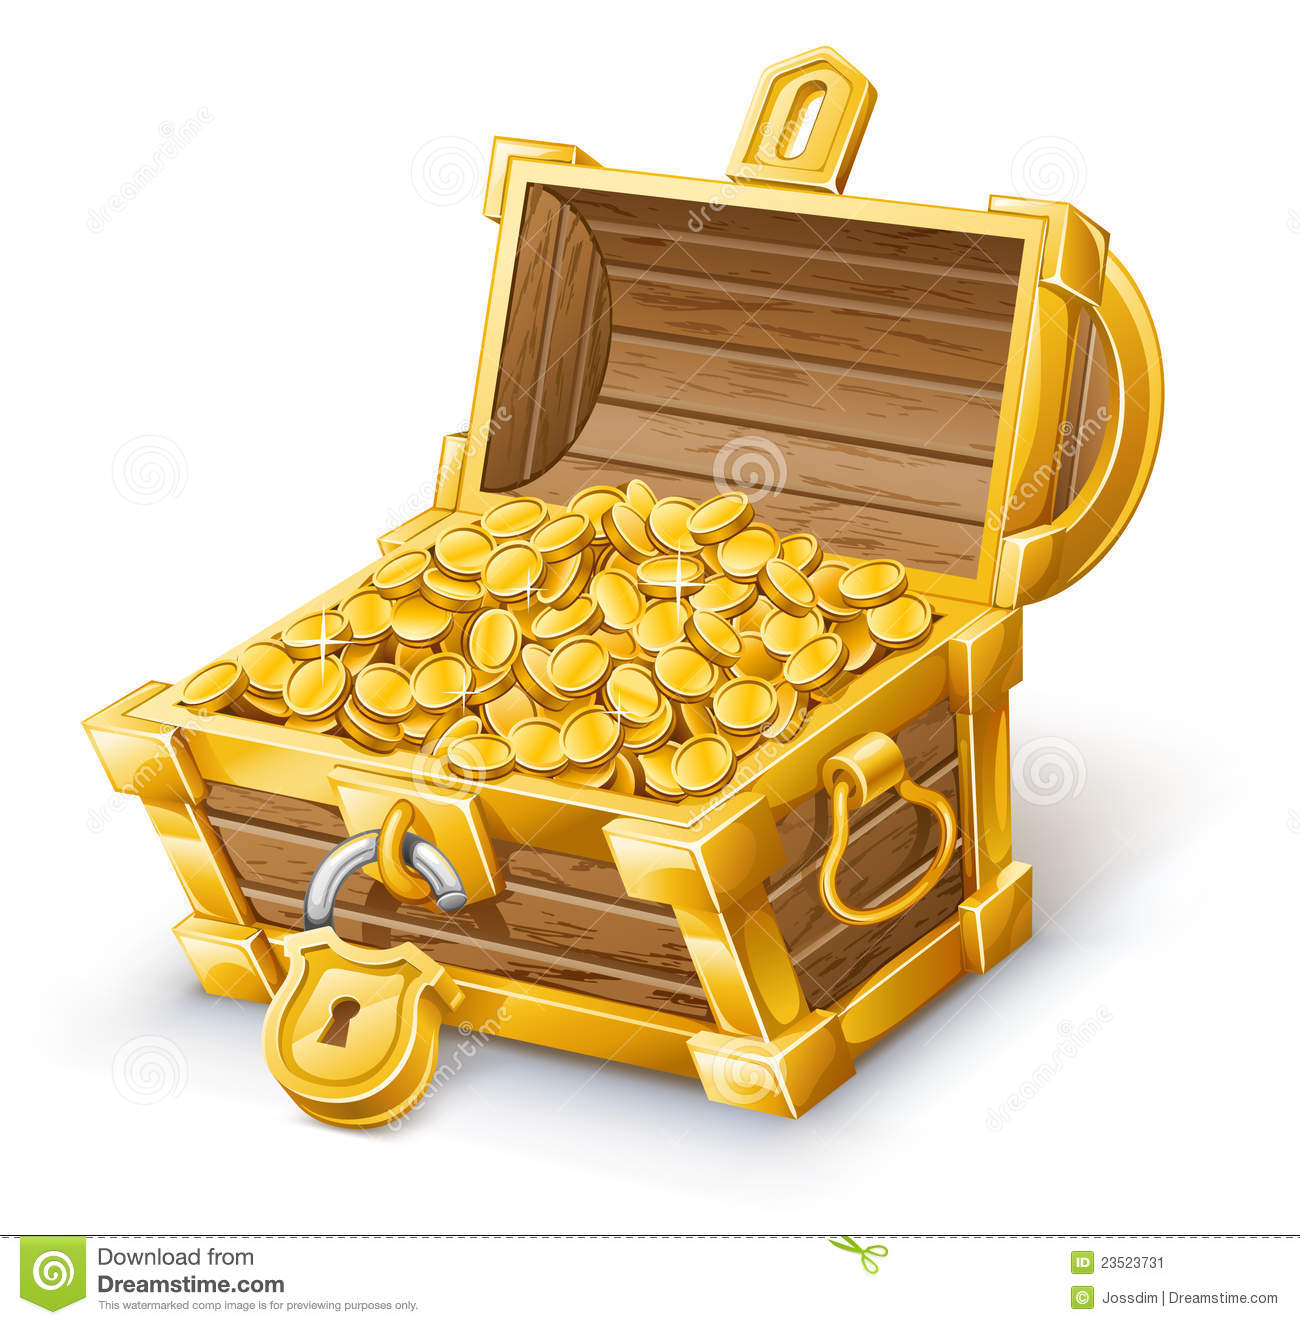 Vector illustration of treasure chest on white background.